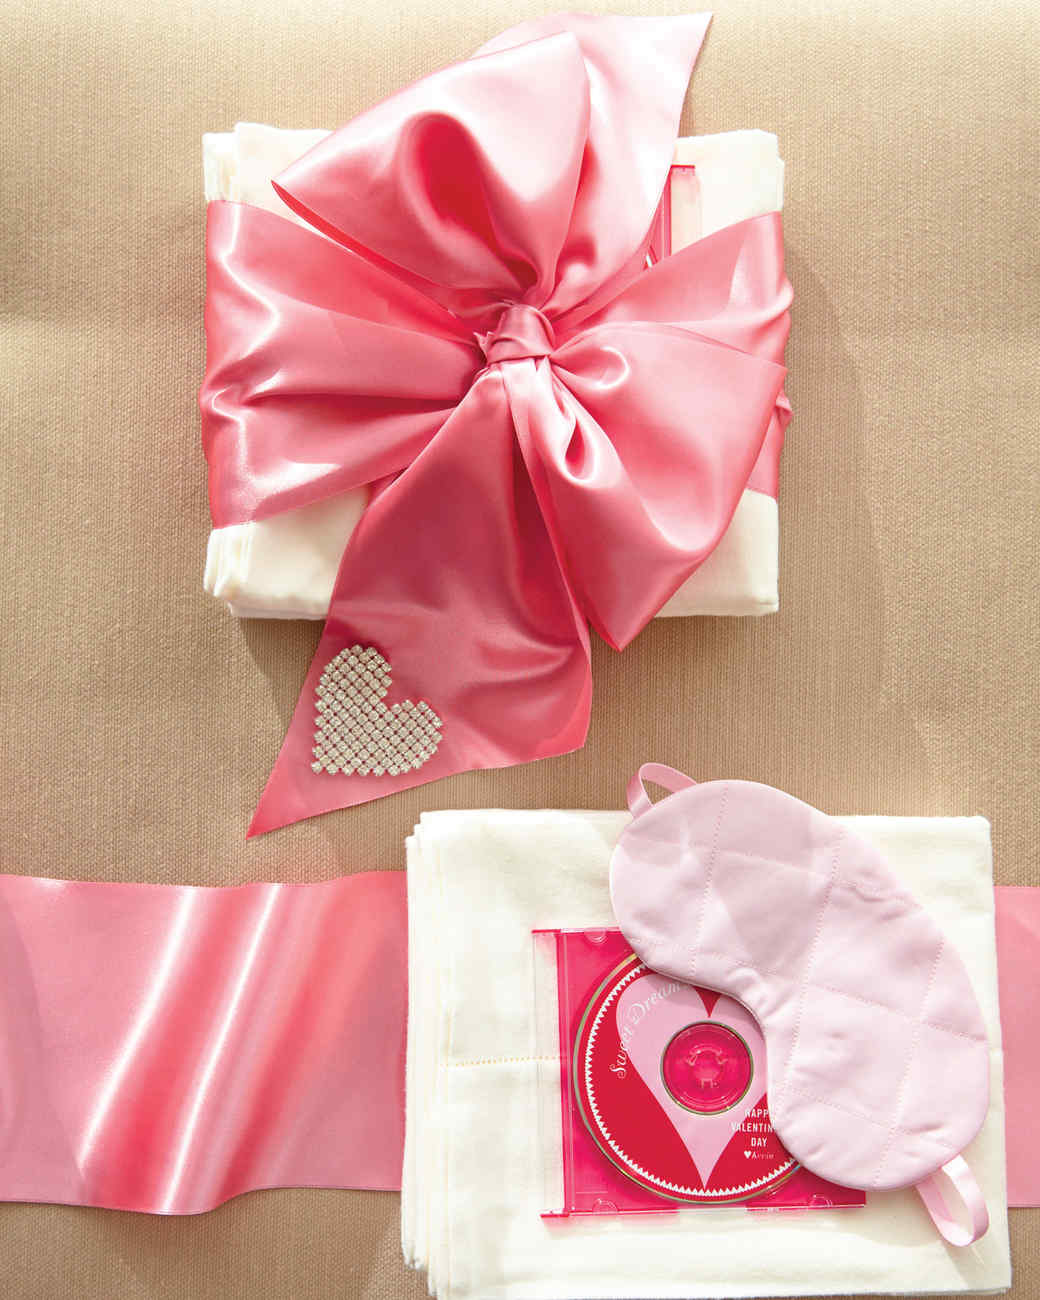 37 Heartfelt Valentine's Day Gifts | Martha Stewart